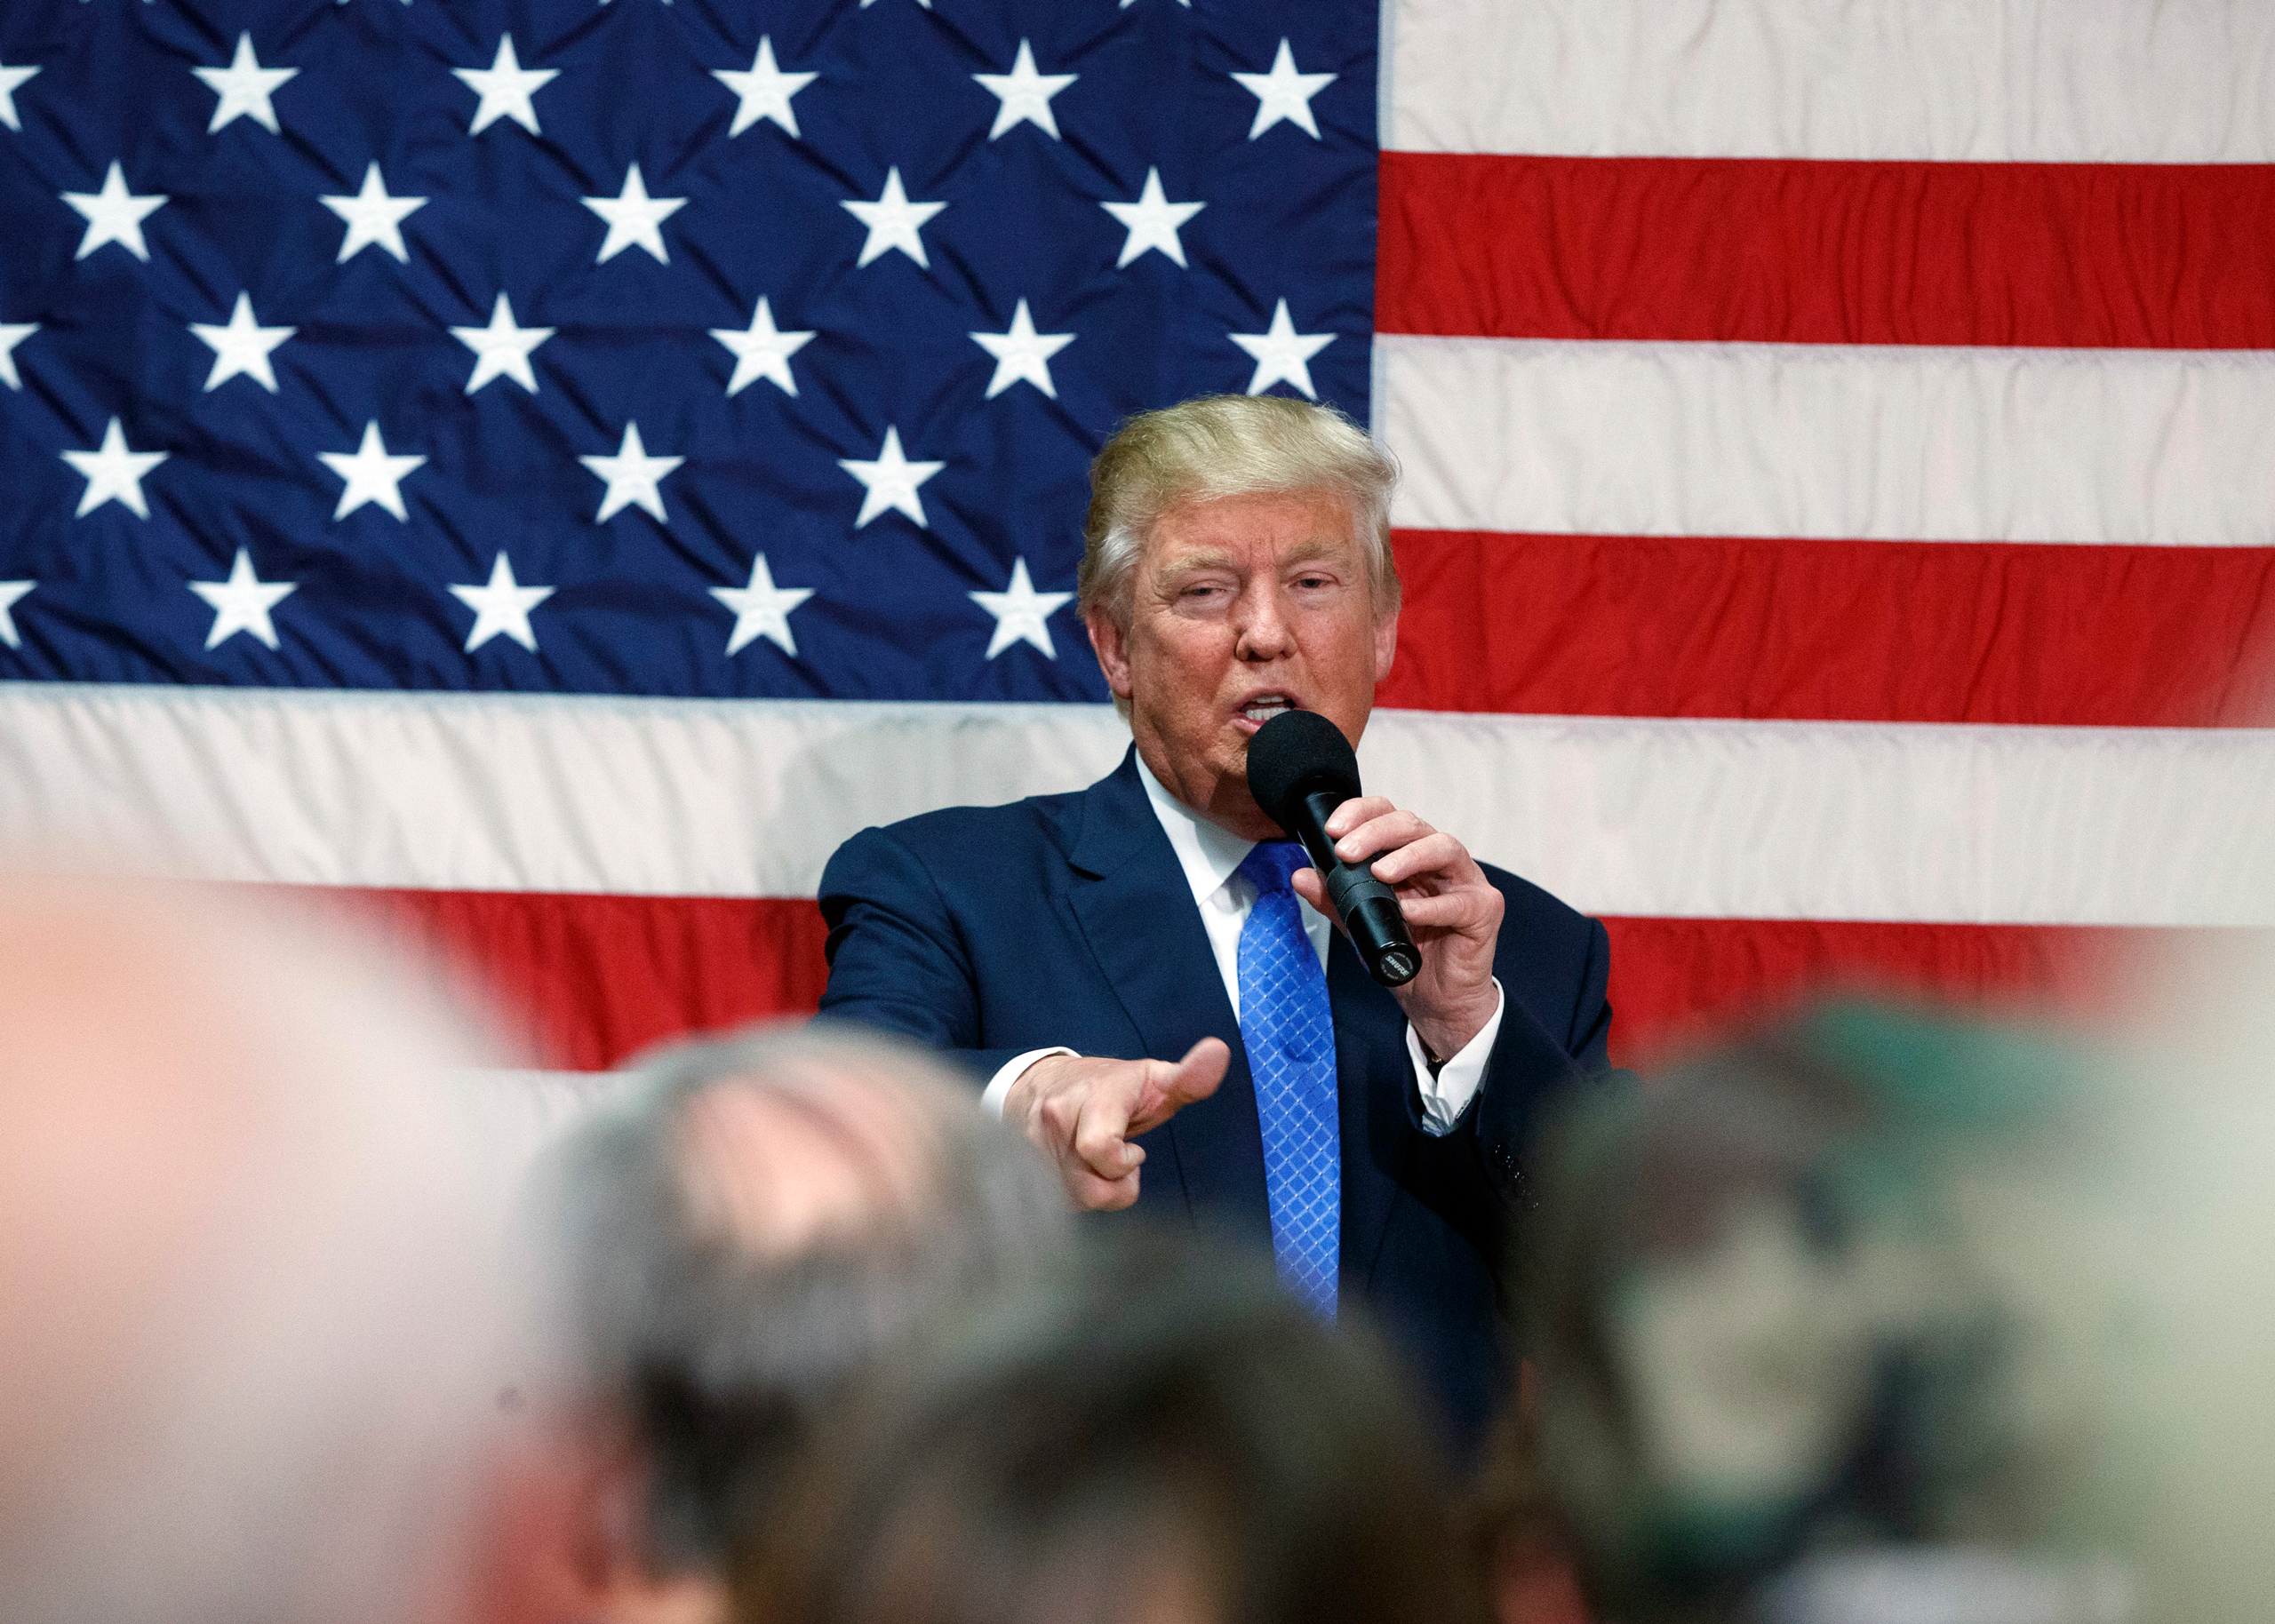 Republican presidential candidate Donald Trump speaks during a town hall in Sandown, N.H., on Oct. 6, 2016.